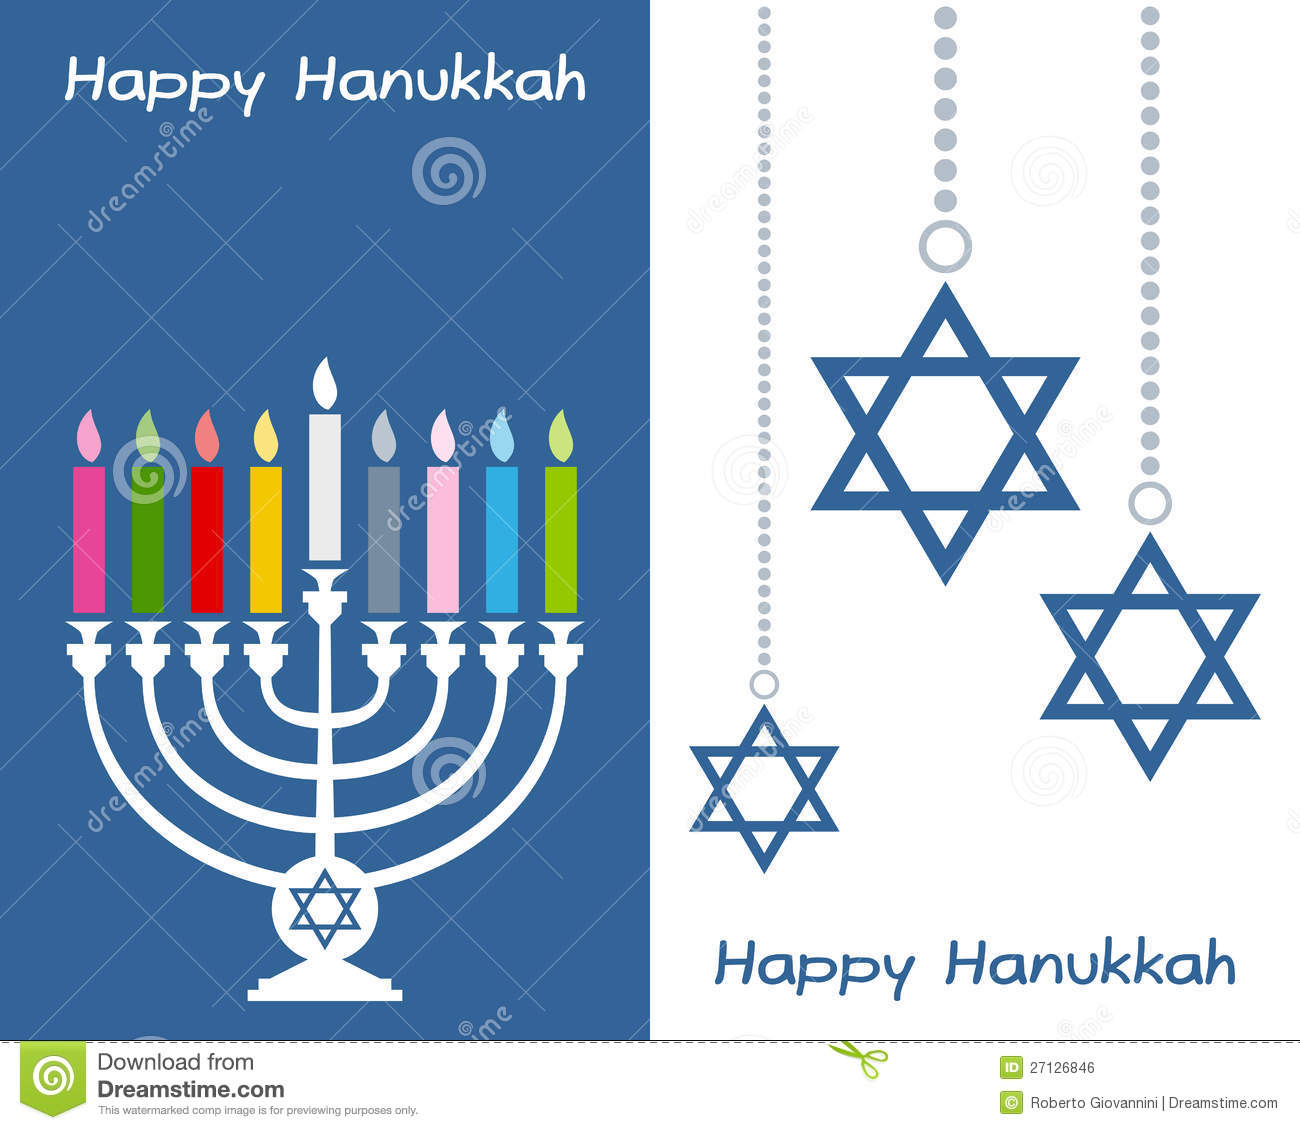 Happy hanukkah greeting cards stock vector illustration of happy hanukkah greeting cards m4hsunfo